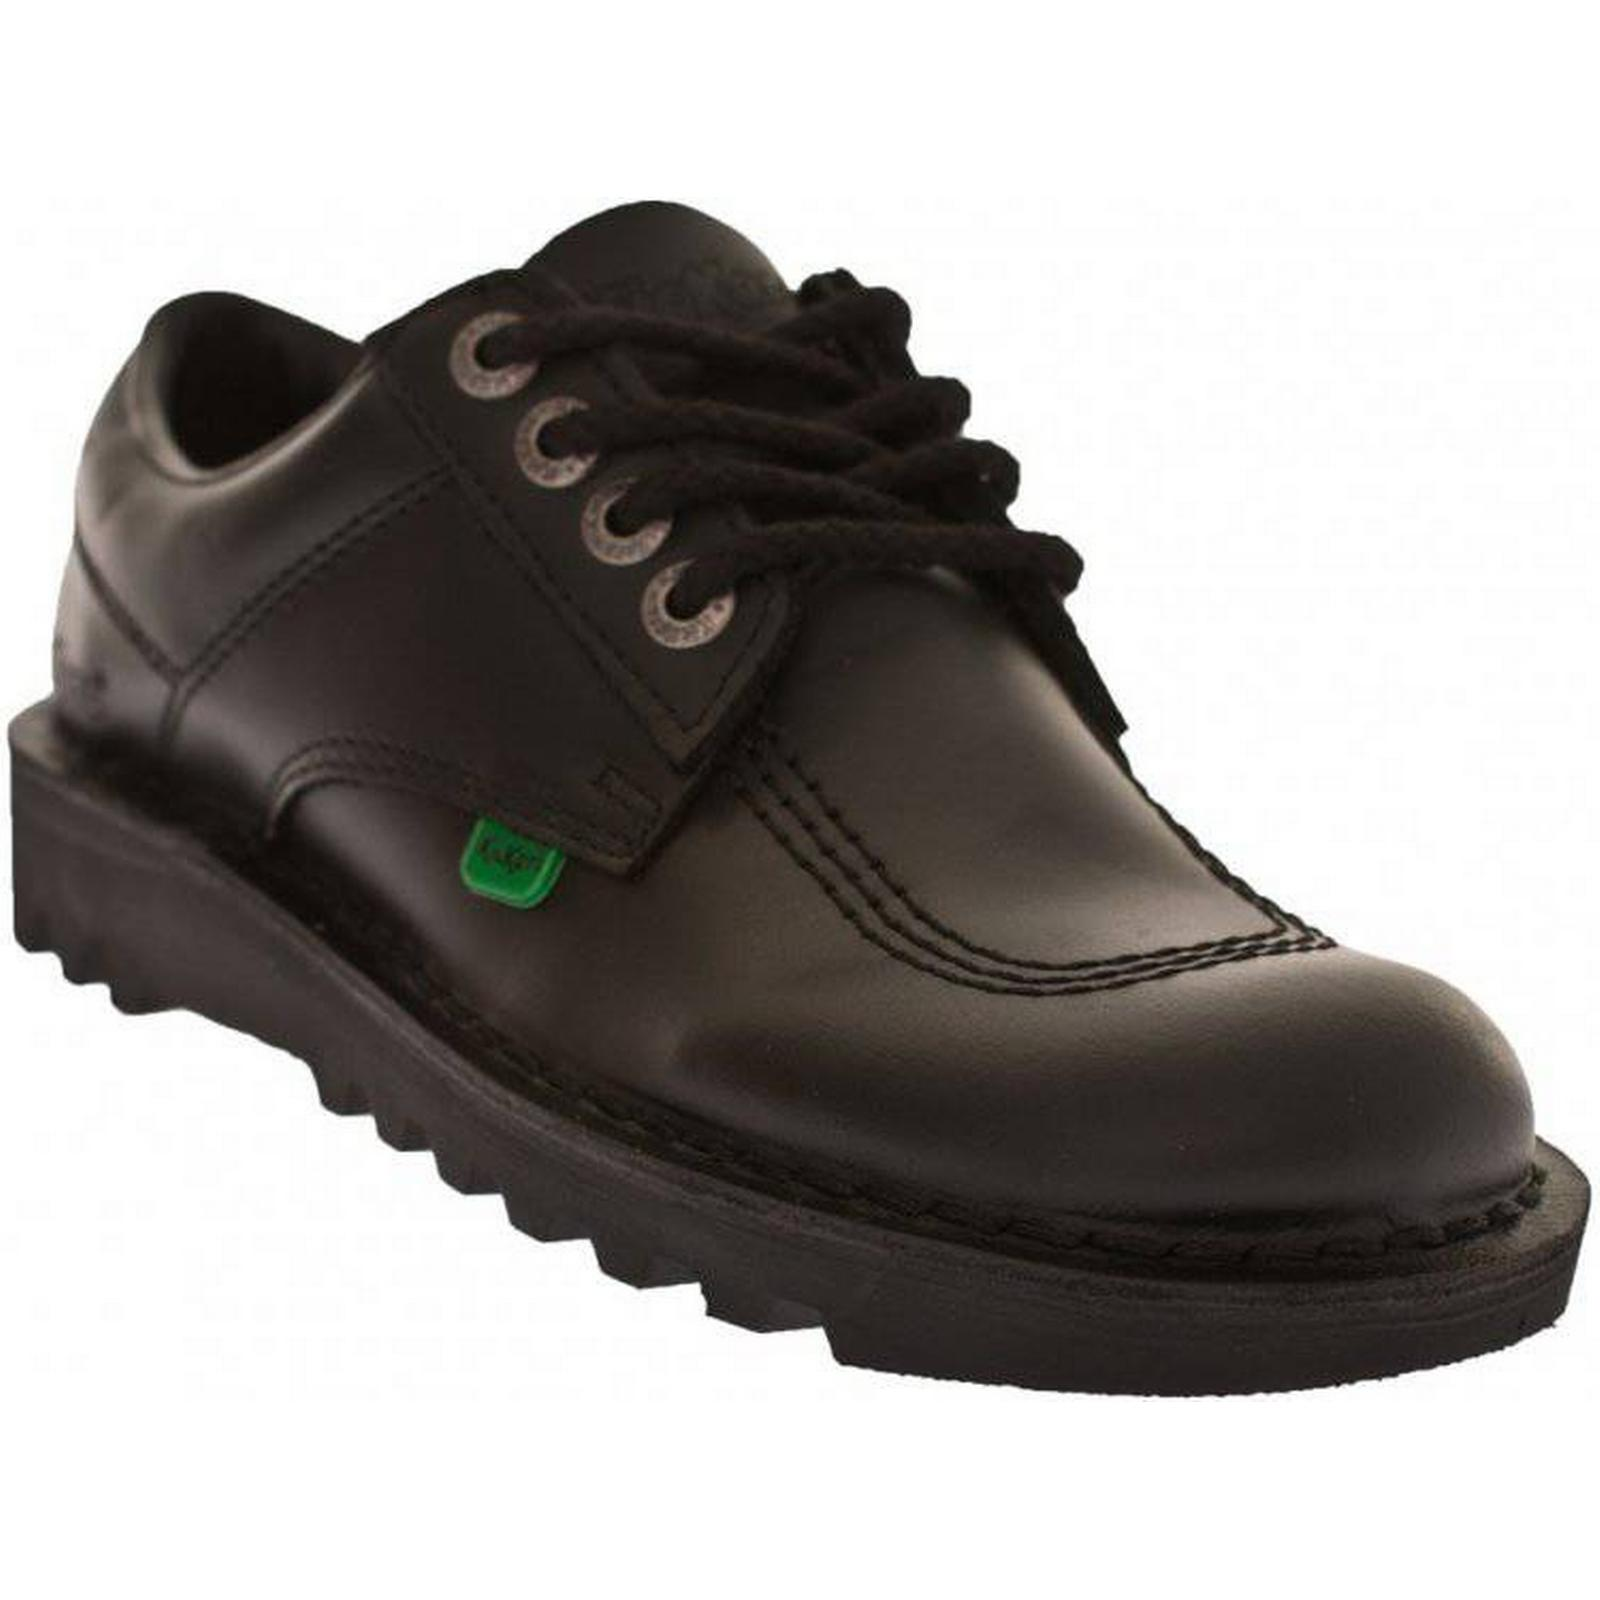 Kickers Womens Size: Kick Lo Core Shoes (Black) Size: Womens 6.5, Colour: BLACK 9fe1a7